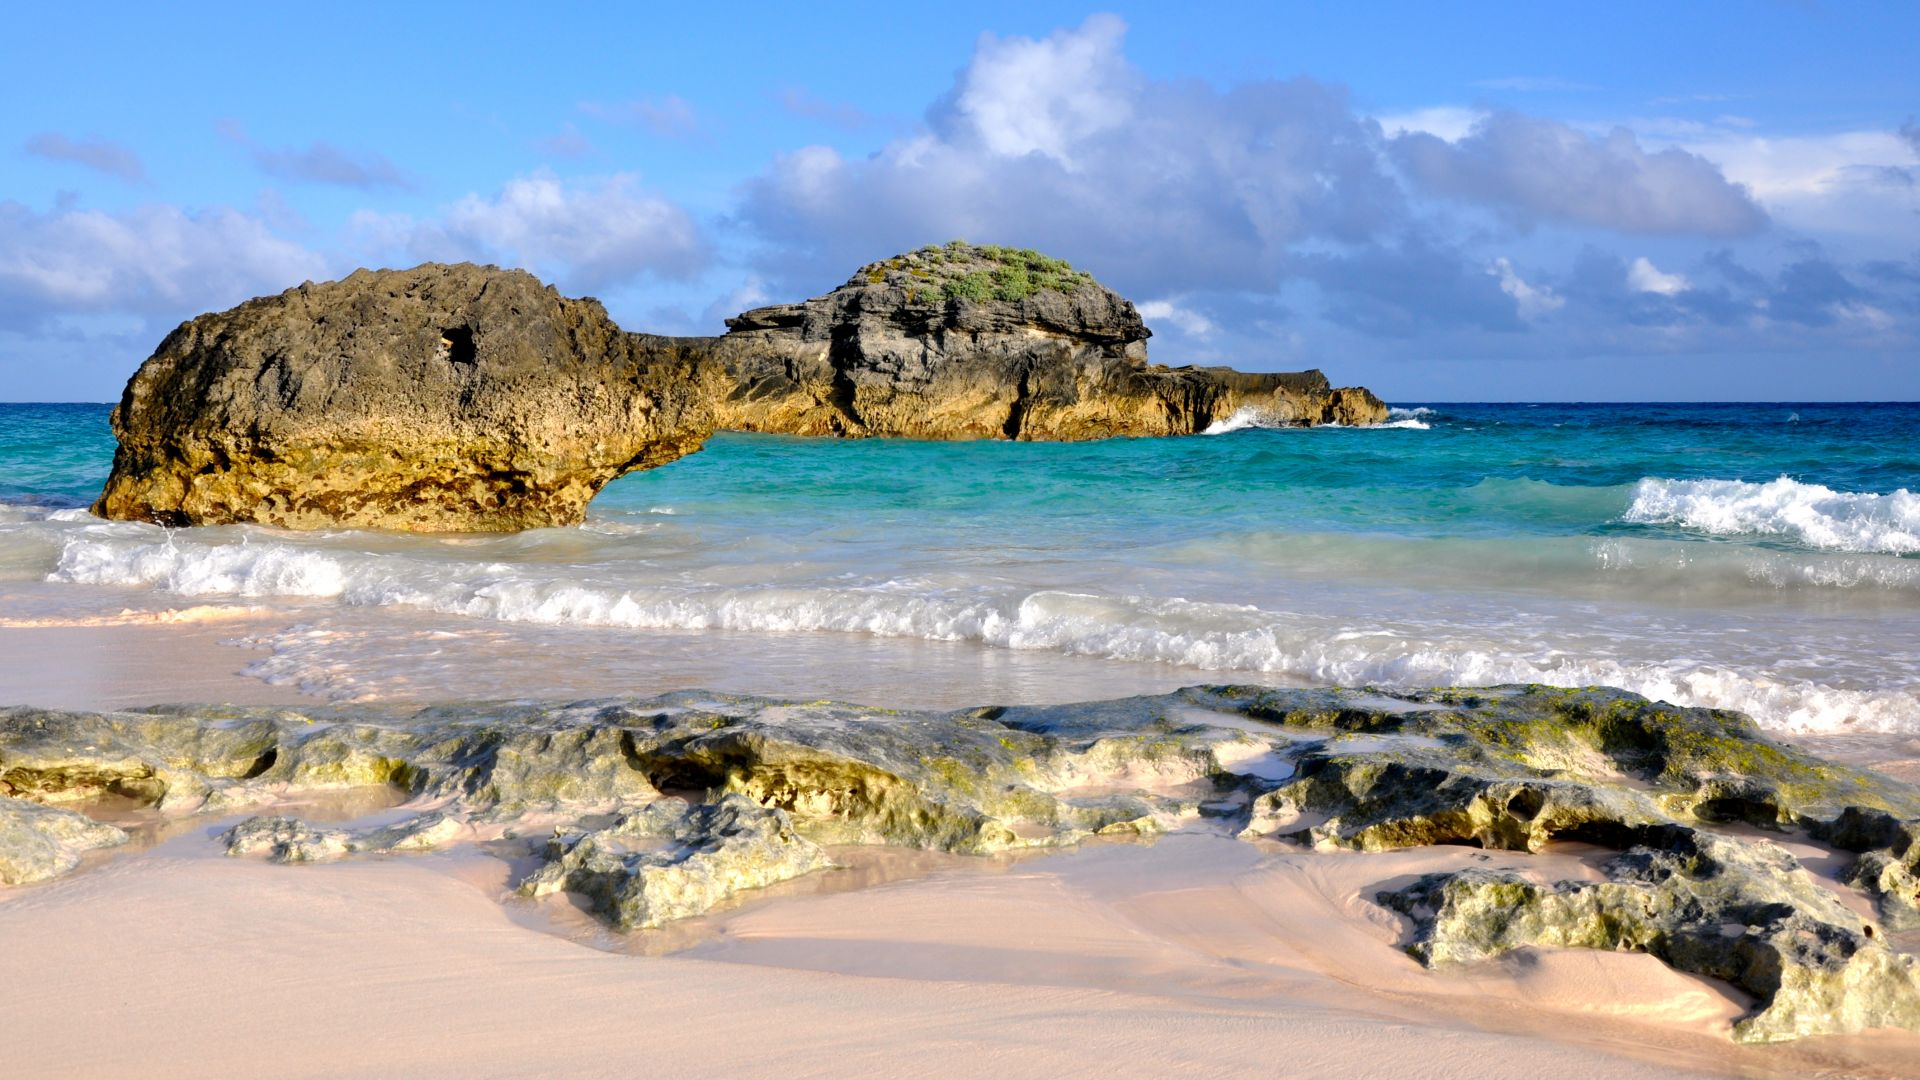 Пляж Подкова, Бермуды, лучшие пляжи 2016, Travellers Choice Awards 2016, Horseshoe Bay Beach, Bermuda, Best beaches of 2016, Travellers Choice Awards 2016 (horizontal)